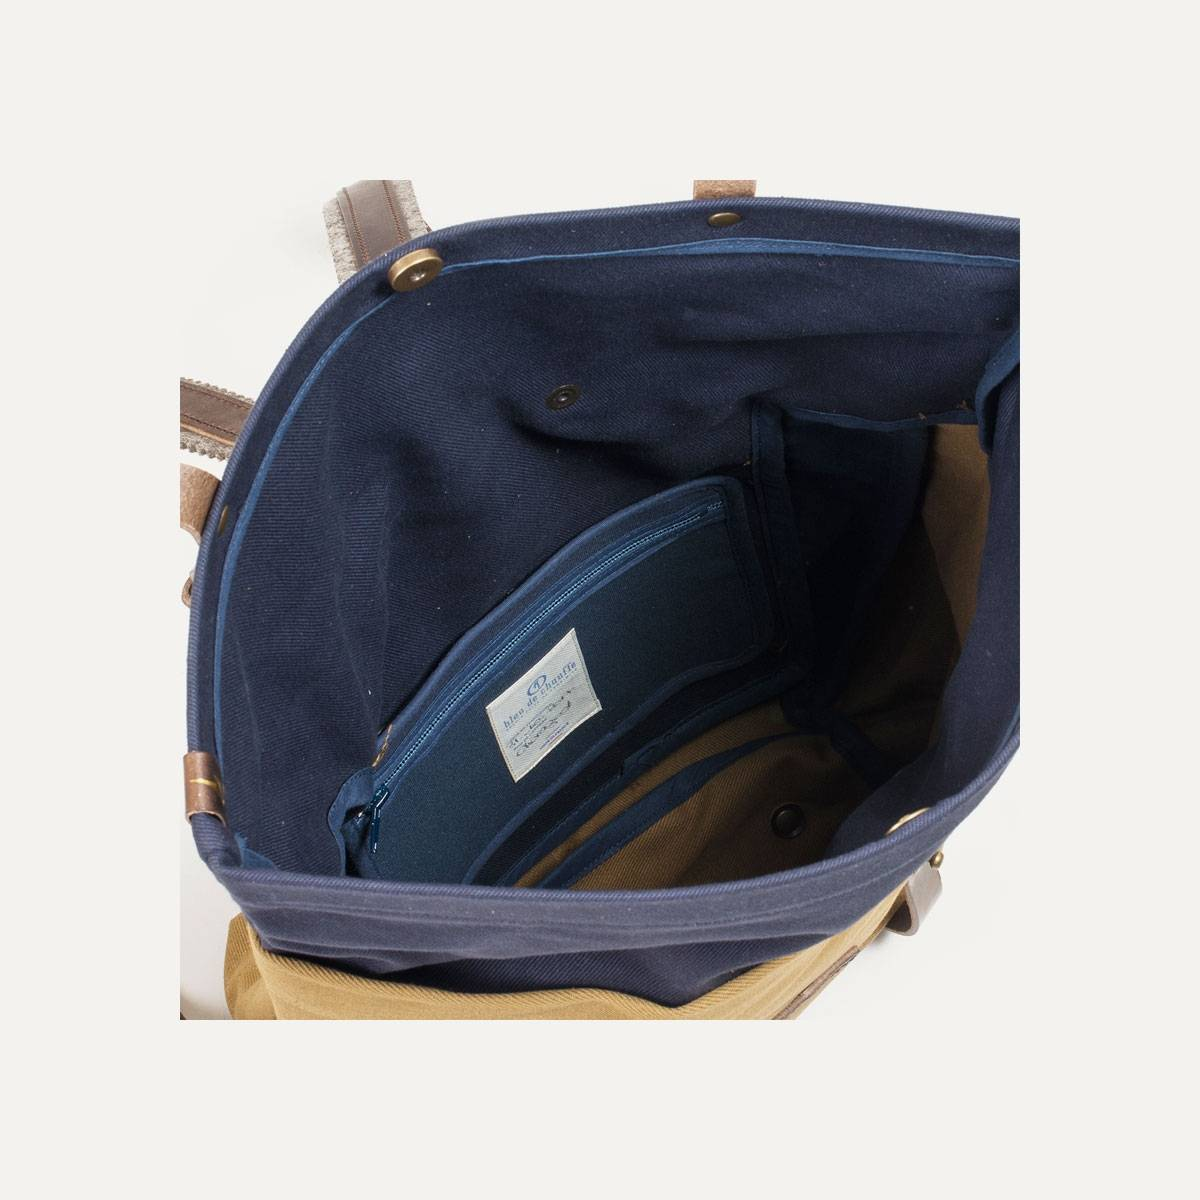 Blitz Motorcycles Scout Backpack - Navy/Camel (image n°7)